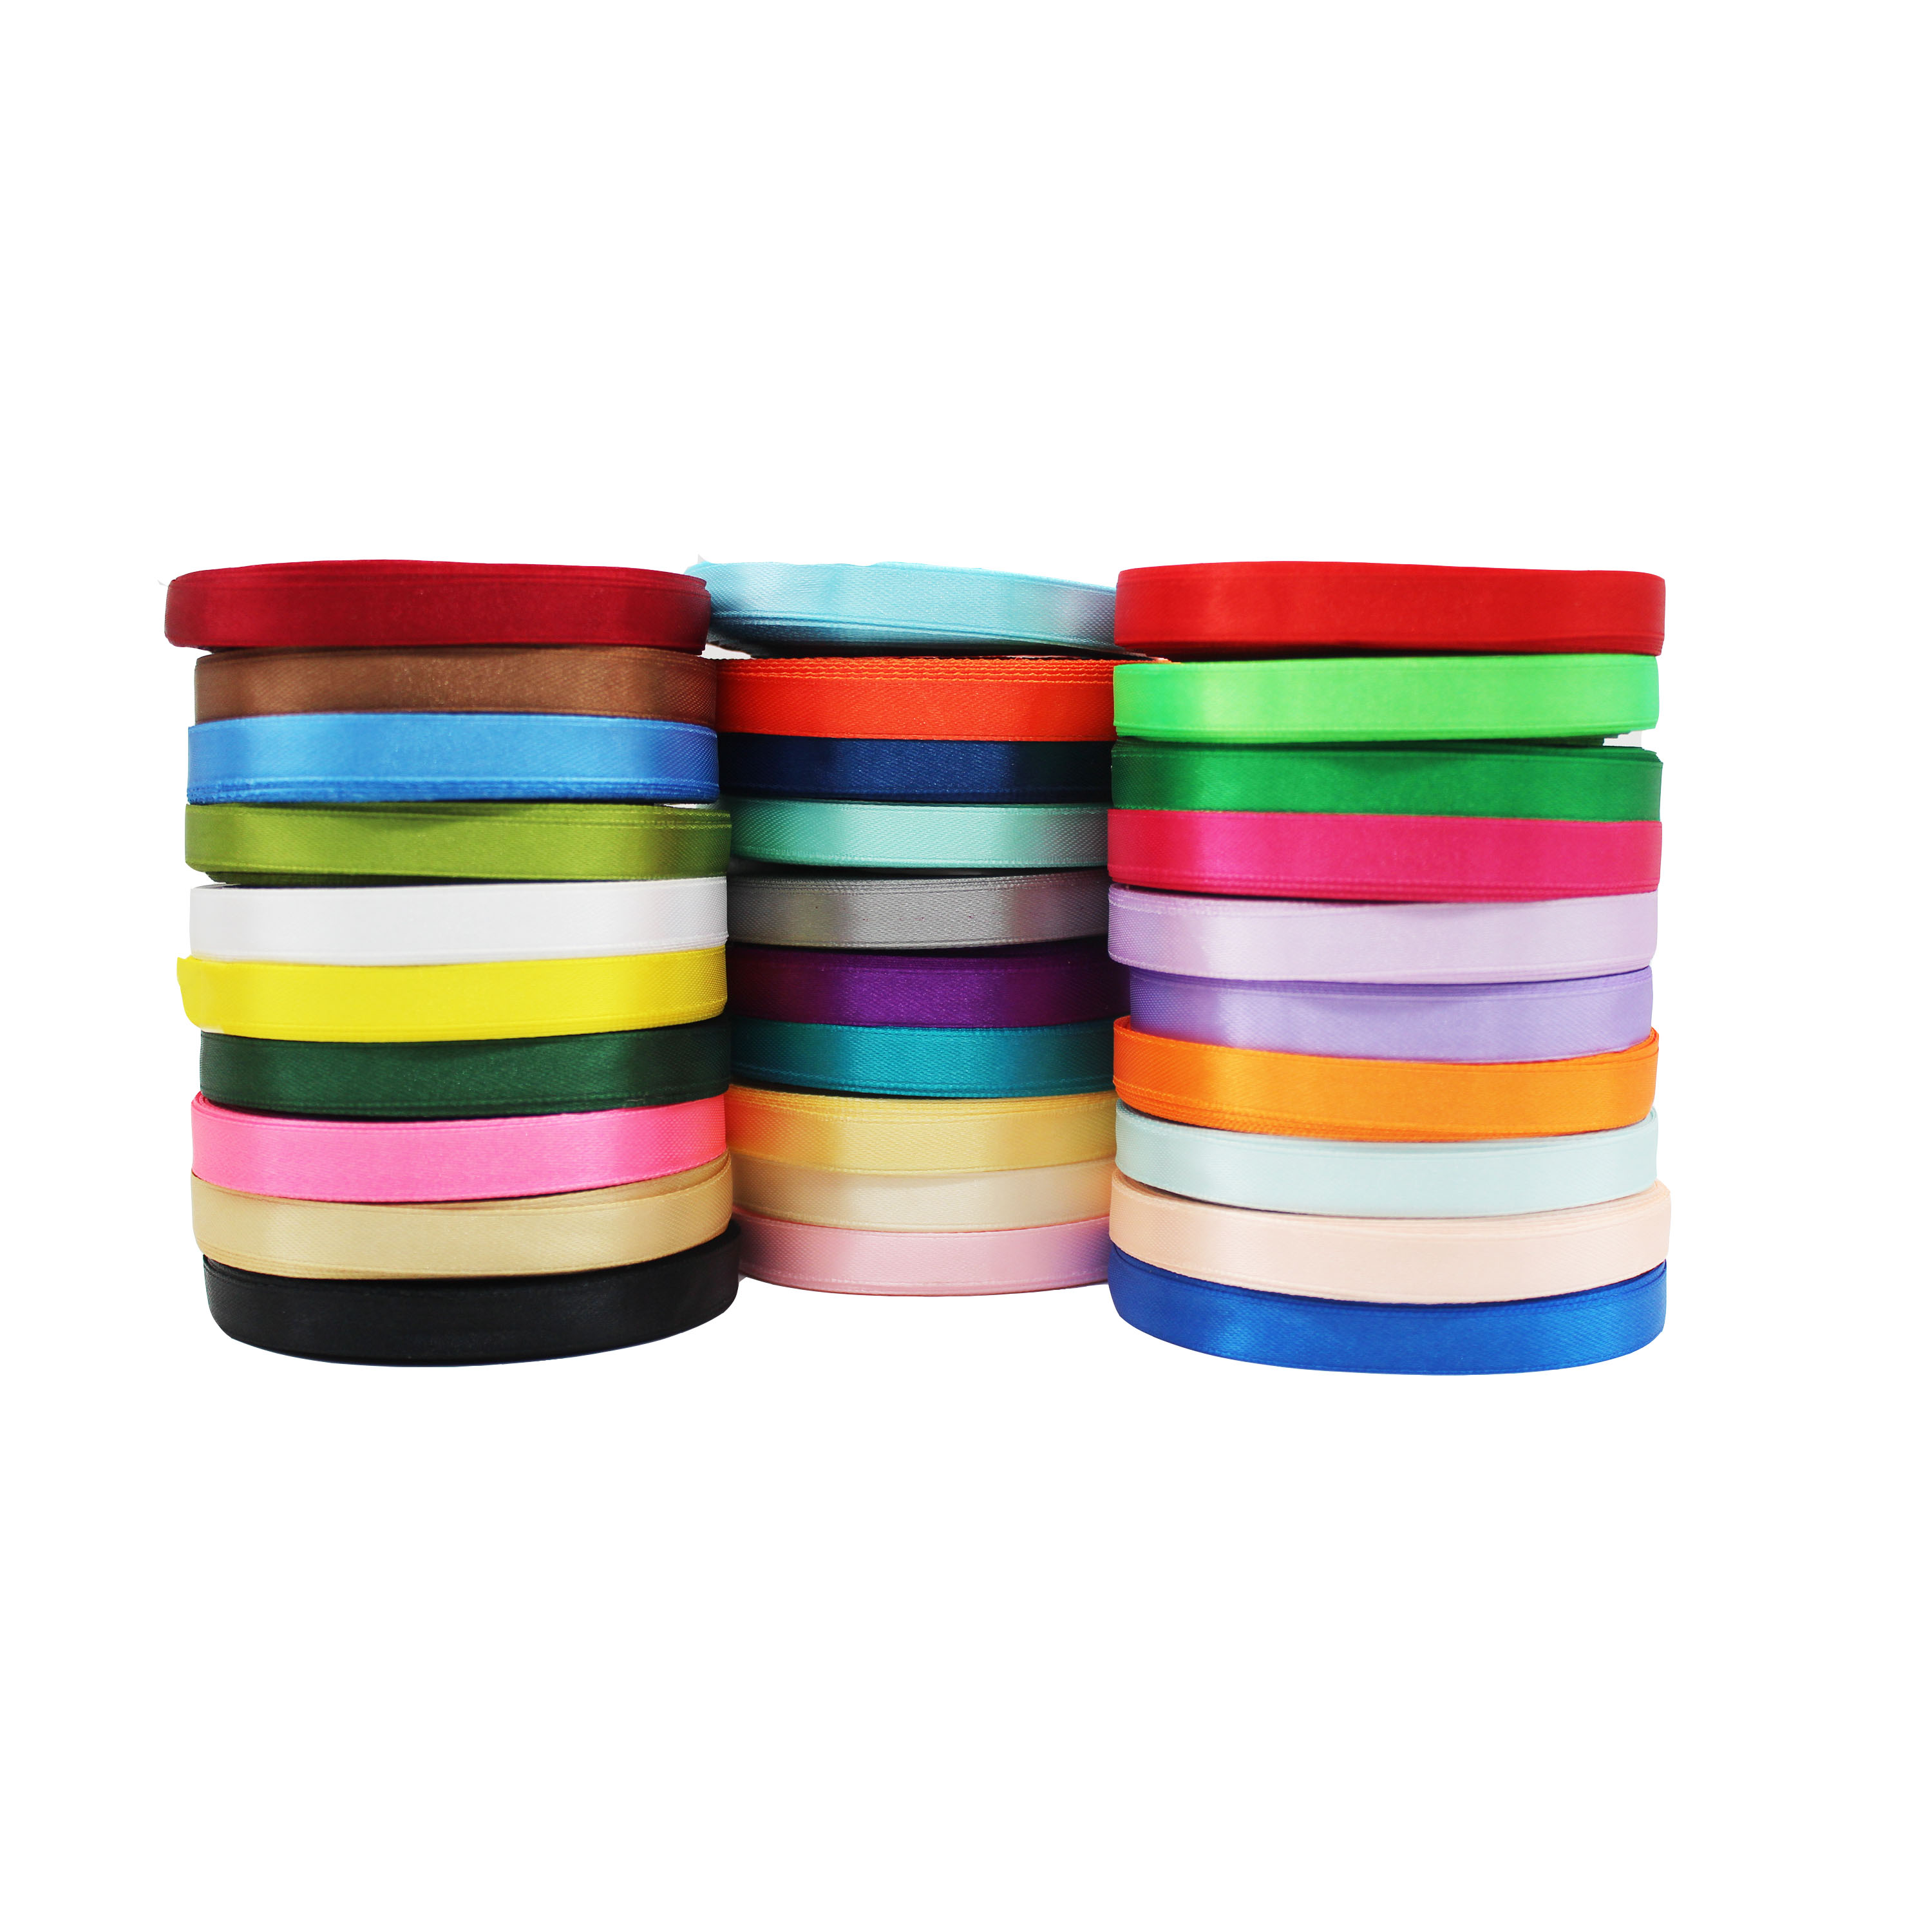 20 x 1m lengths of Mixed PLAIN Christmas Ribbons ~ 3mm-40mm wide ~ Top Quality